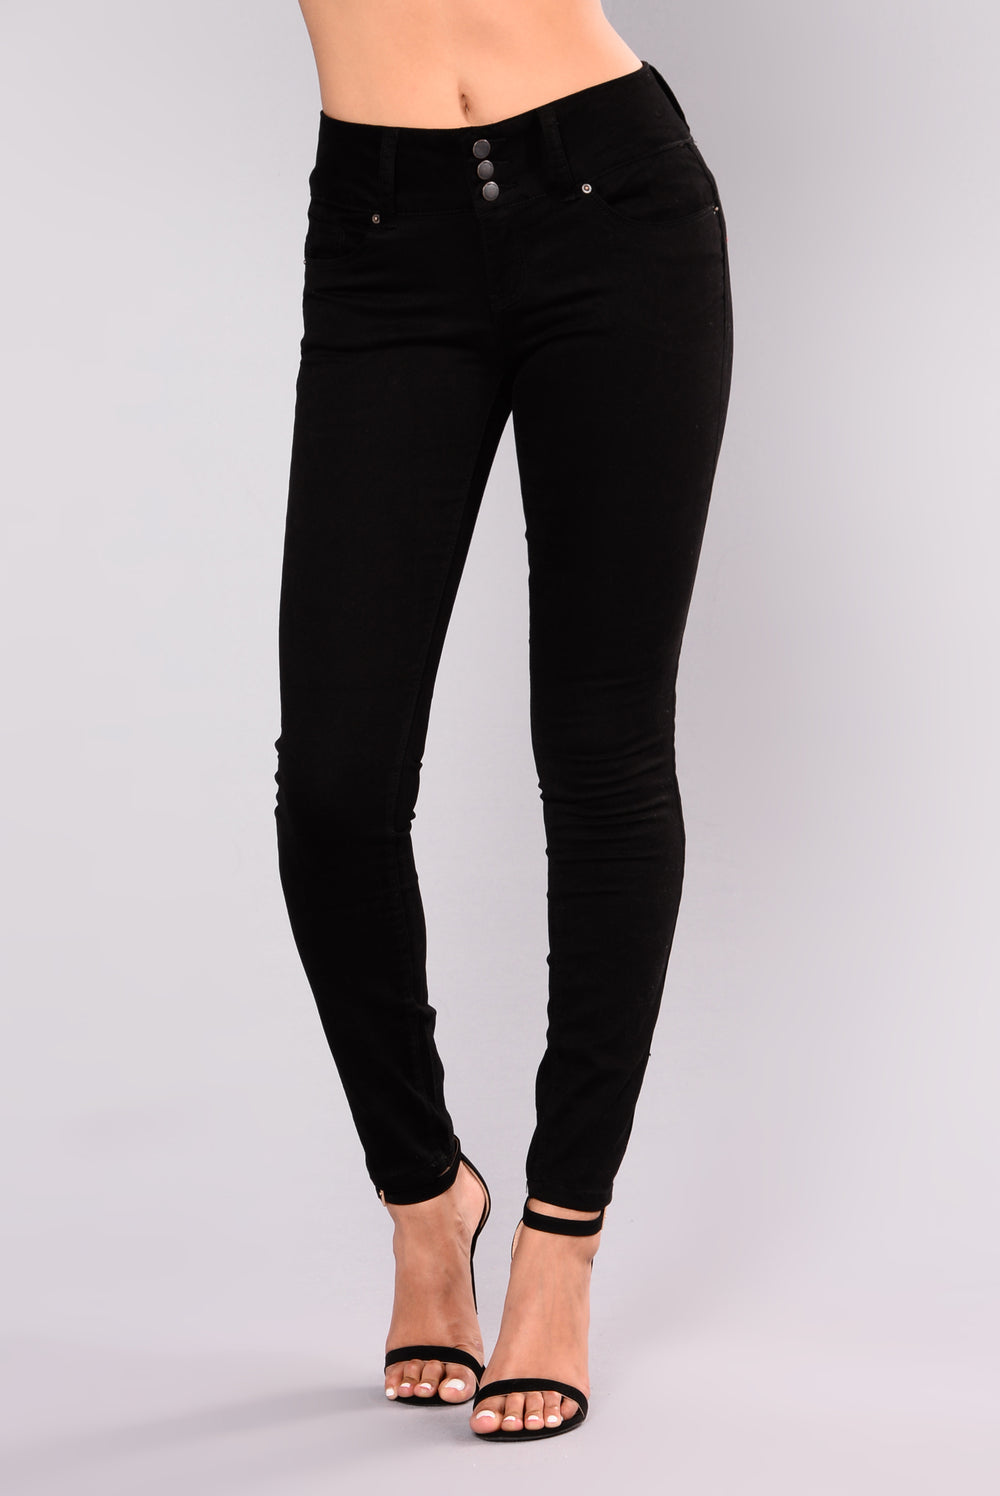 Devina Booty Shaping Twill Pants - Black